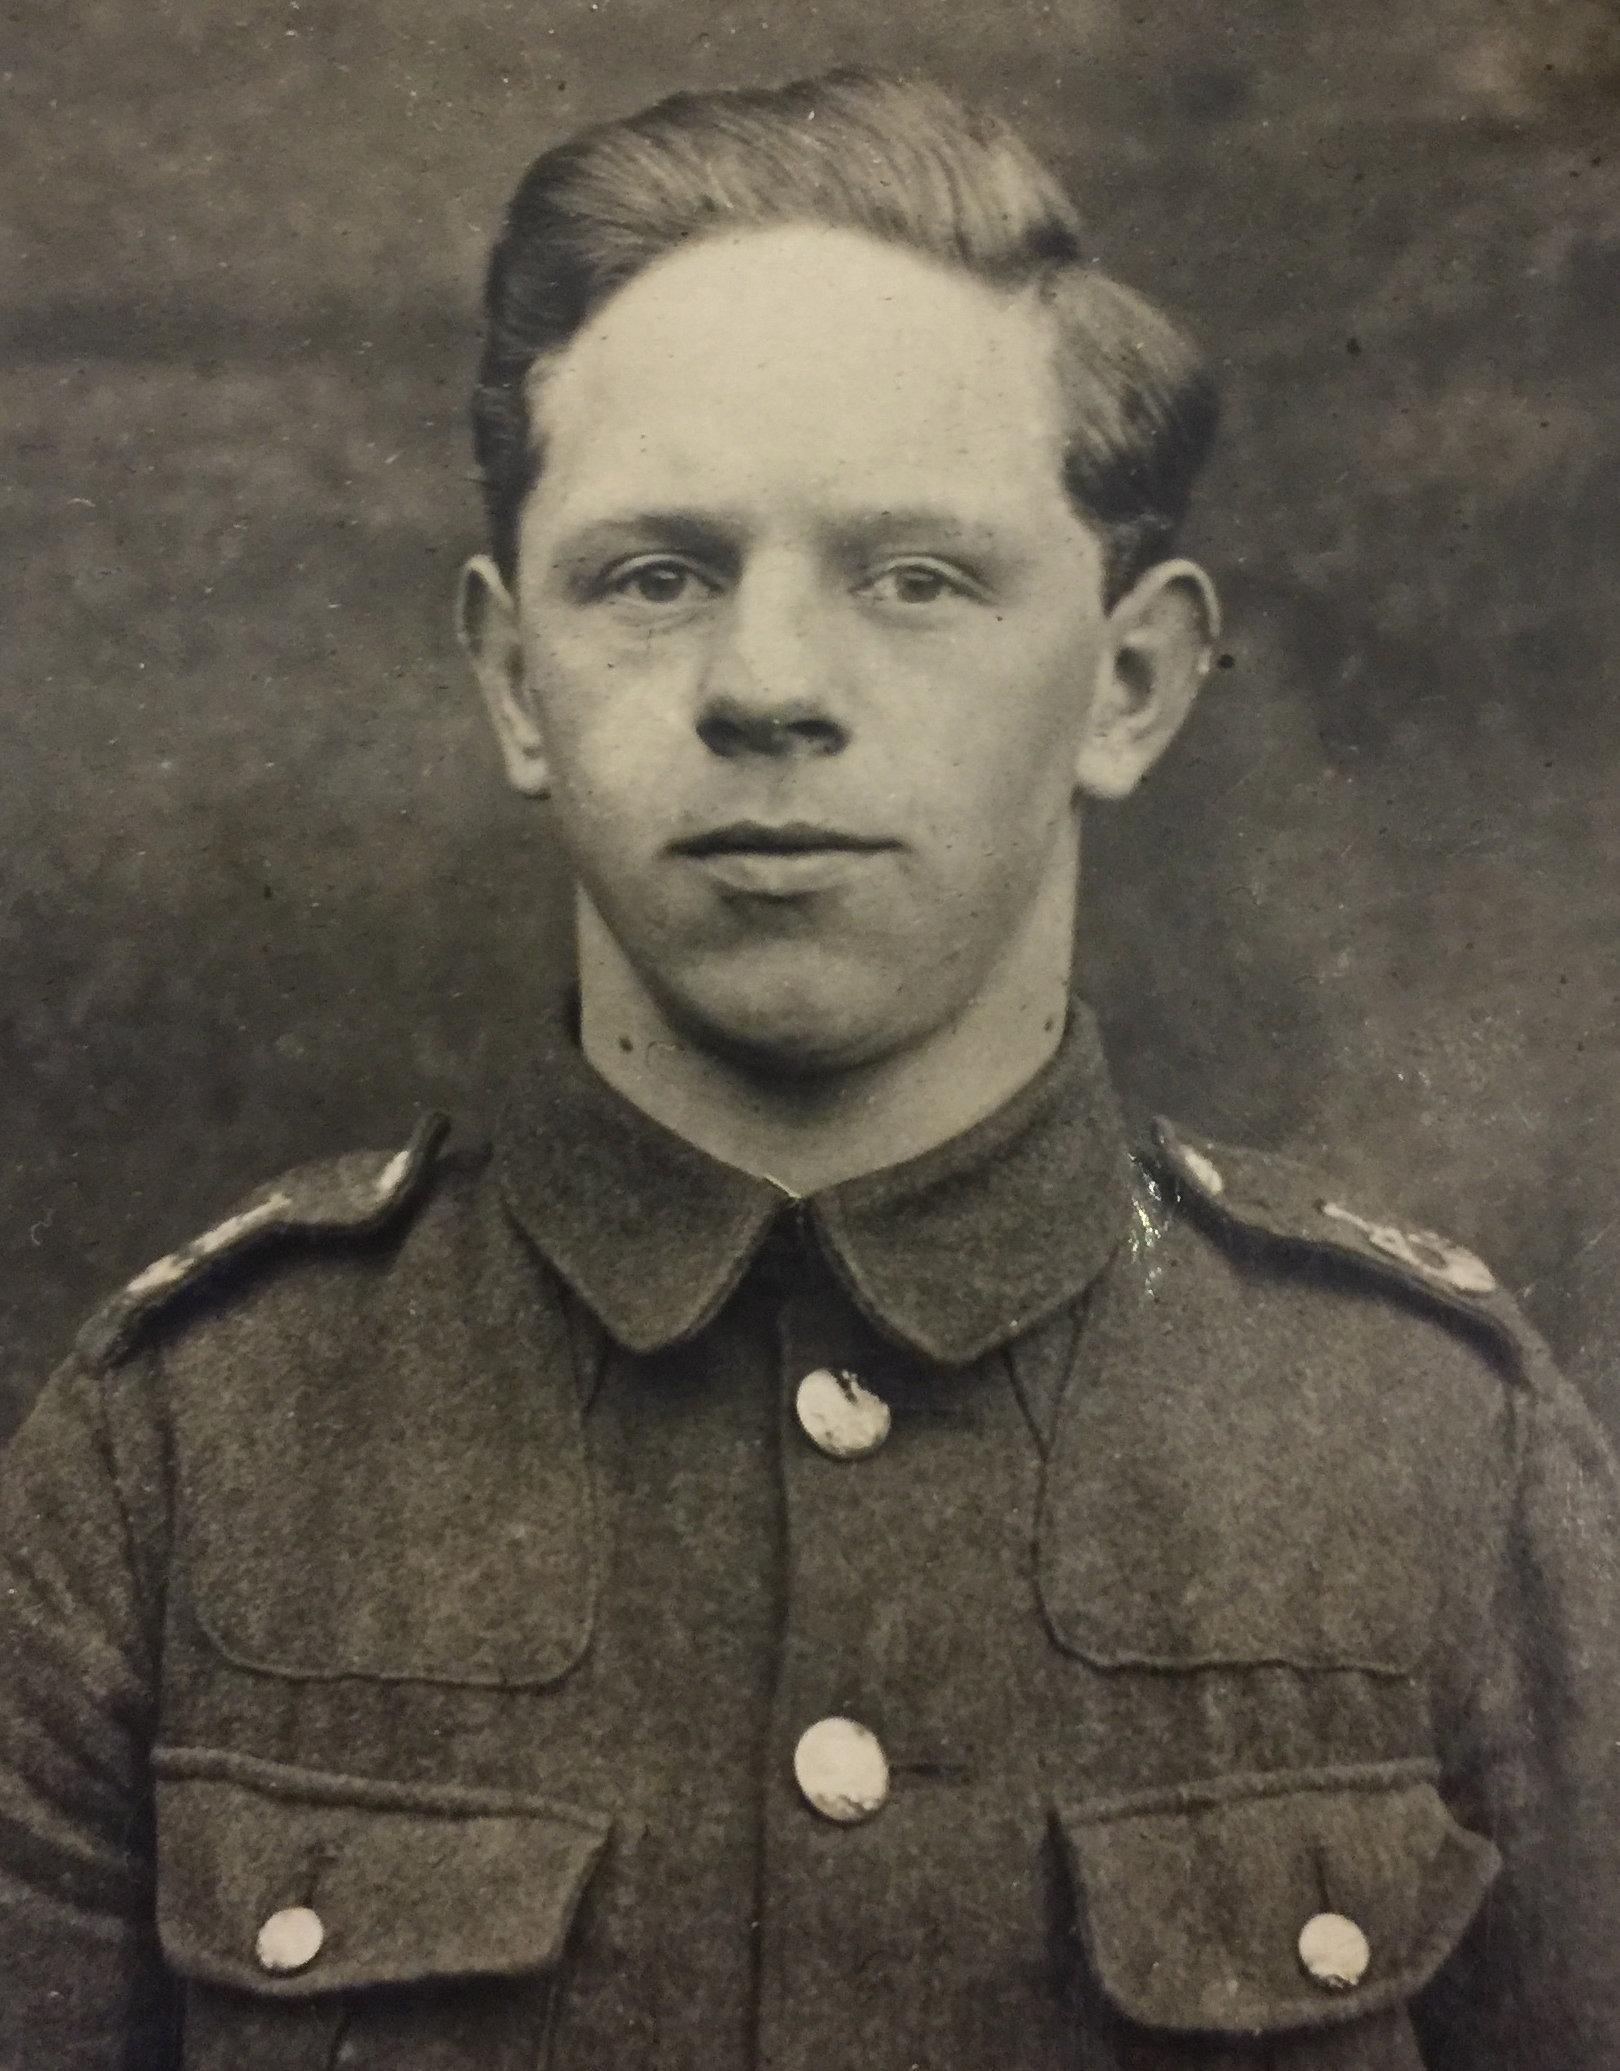 Robert Dawson was killed in shell attack during First World War